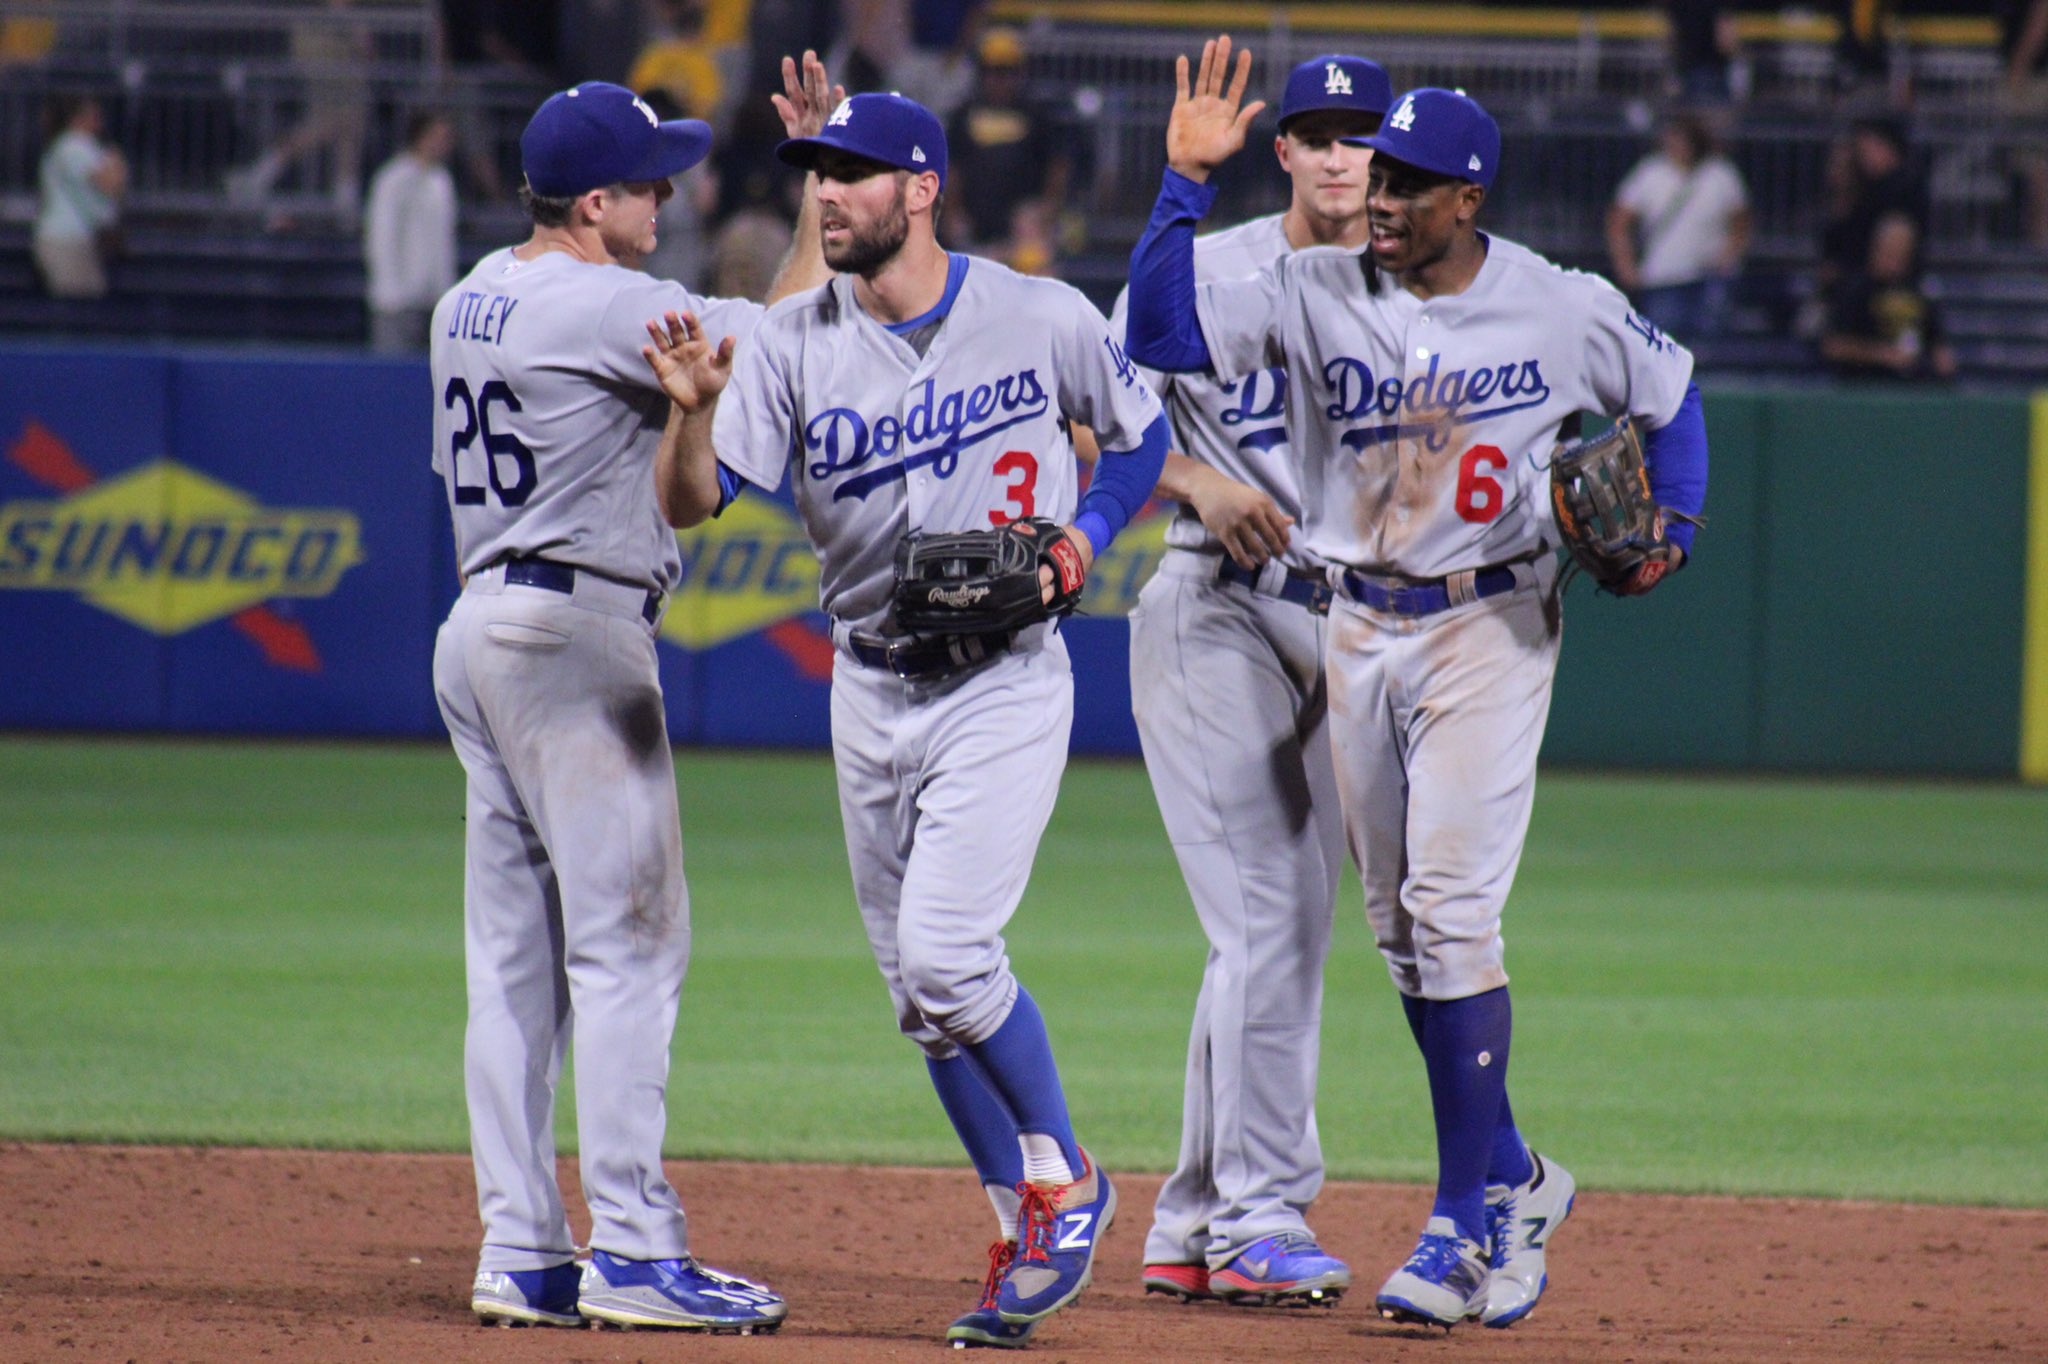 Victory formation! #LetsGoDodgers https://t.co/EdeBwELicT